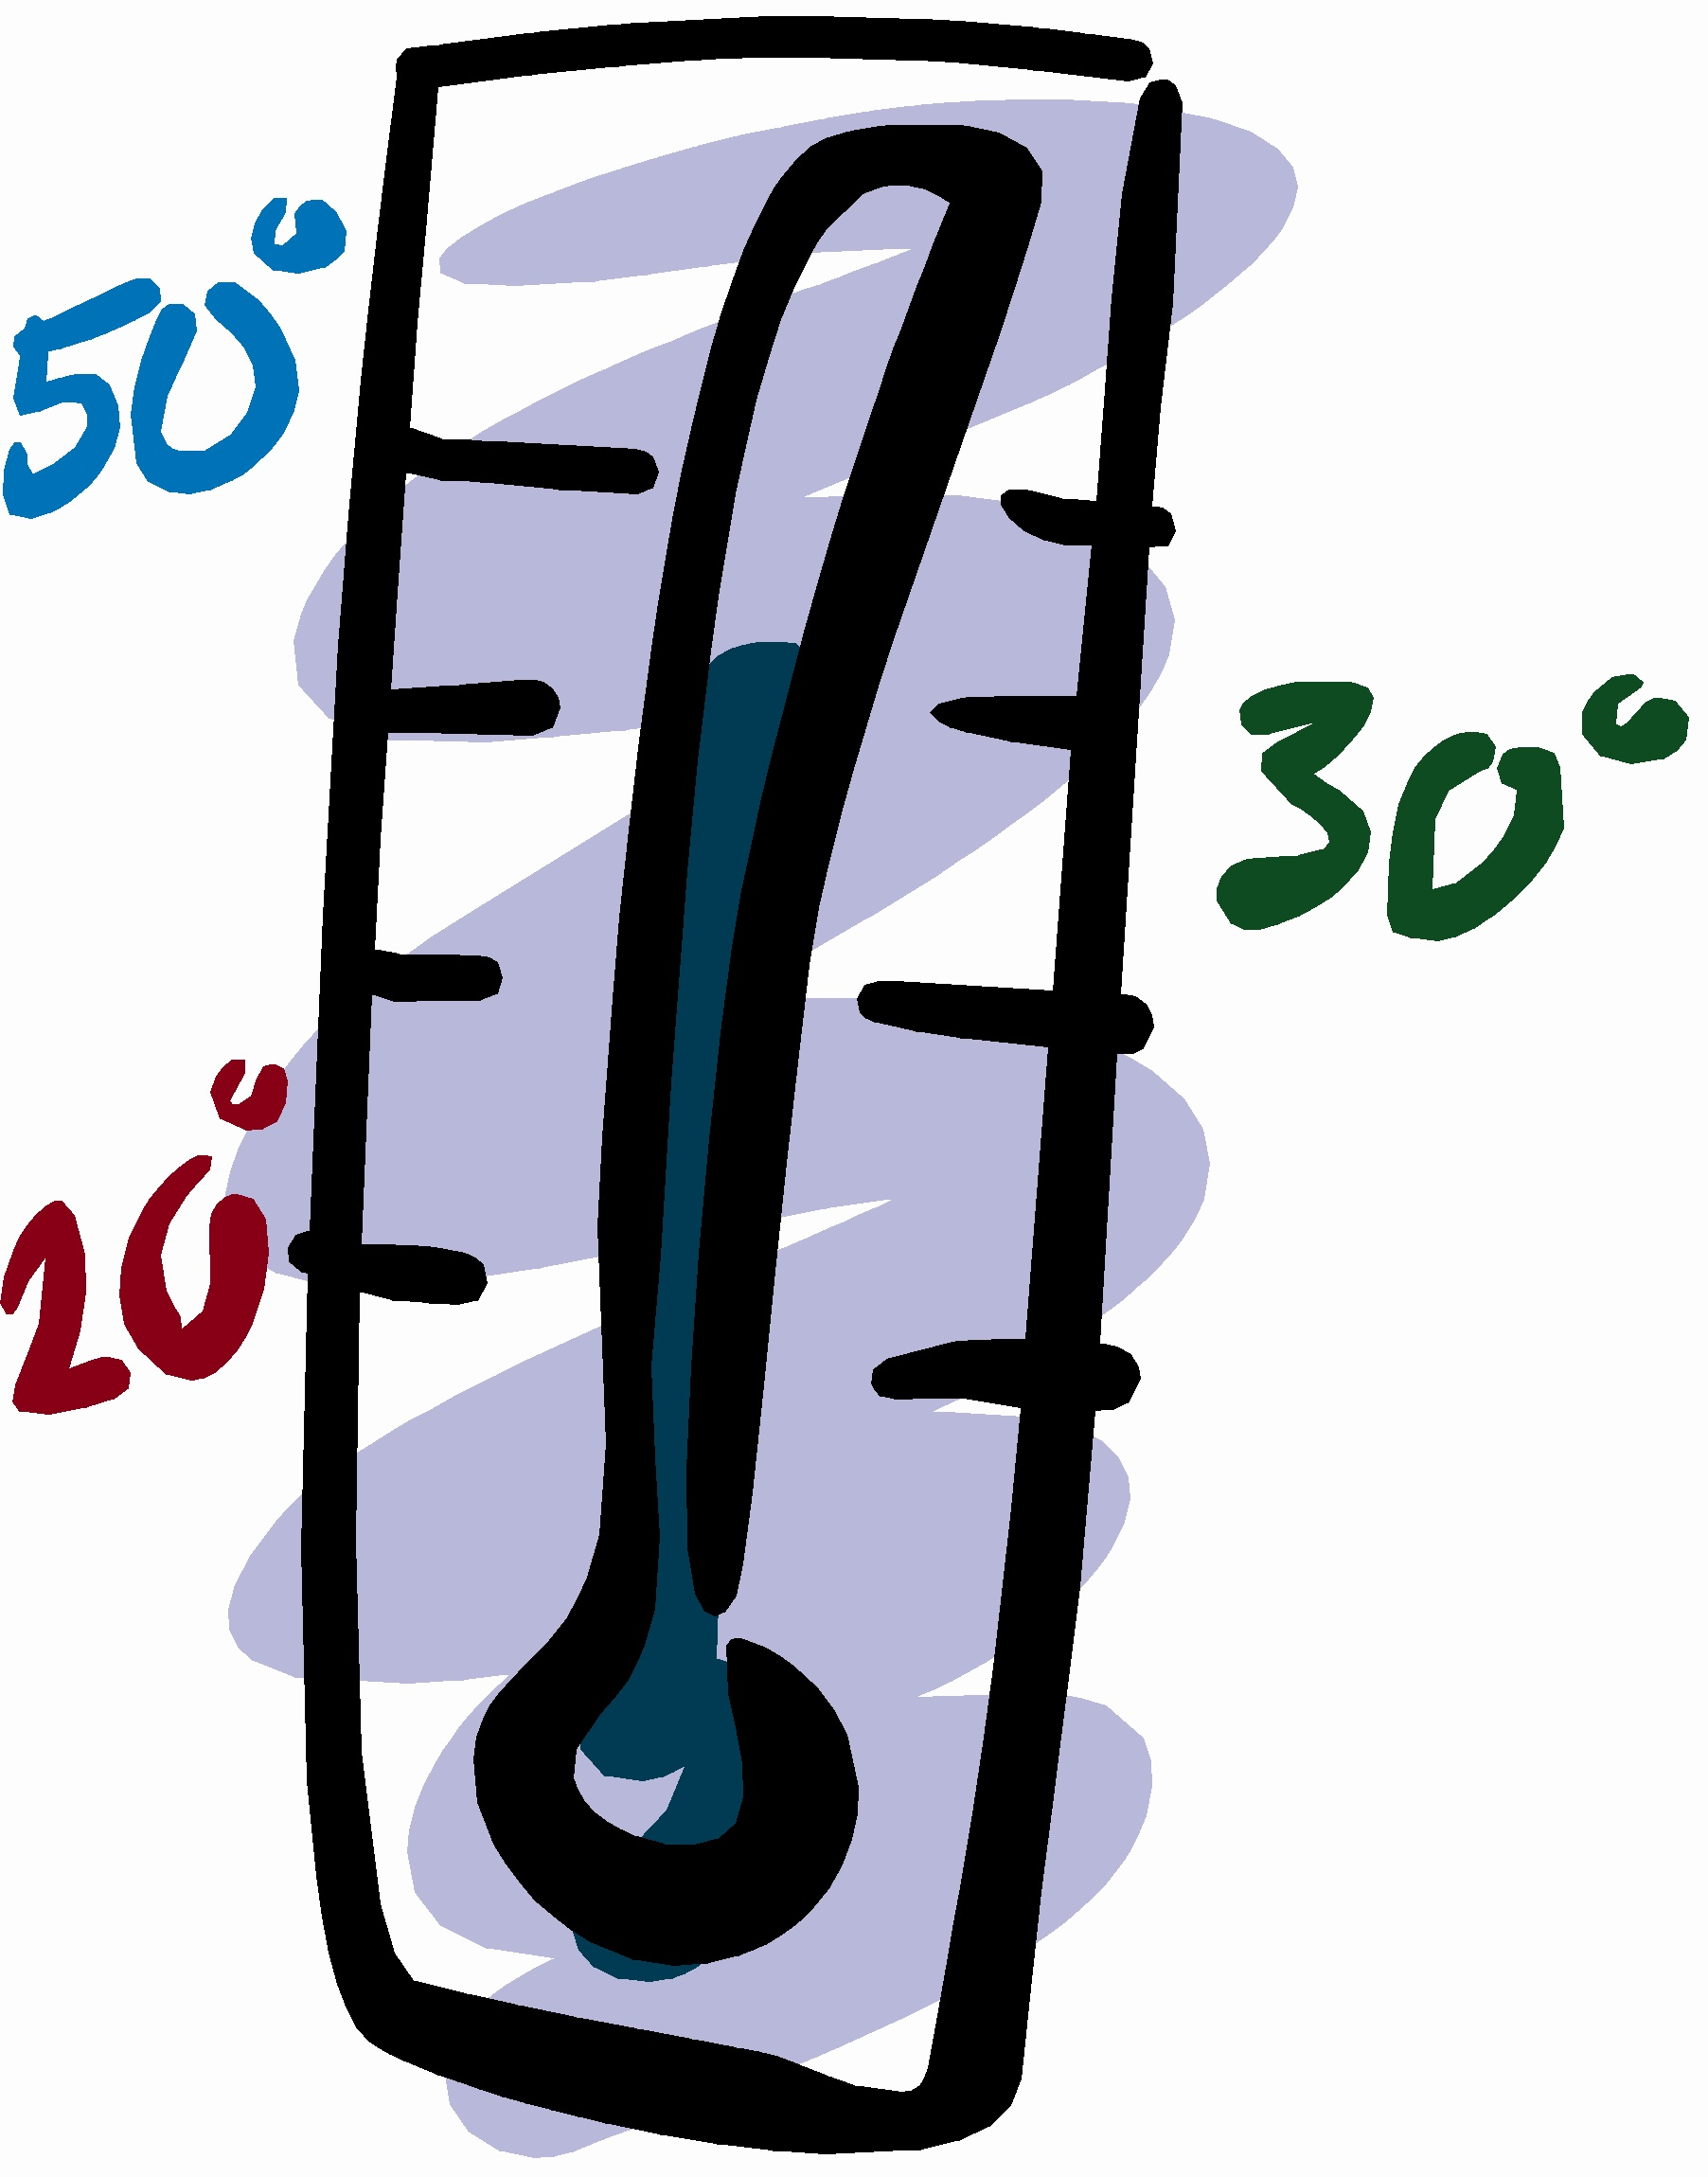 Cold Weather Thermometer Clip Art N8 free image.